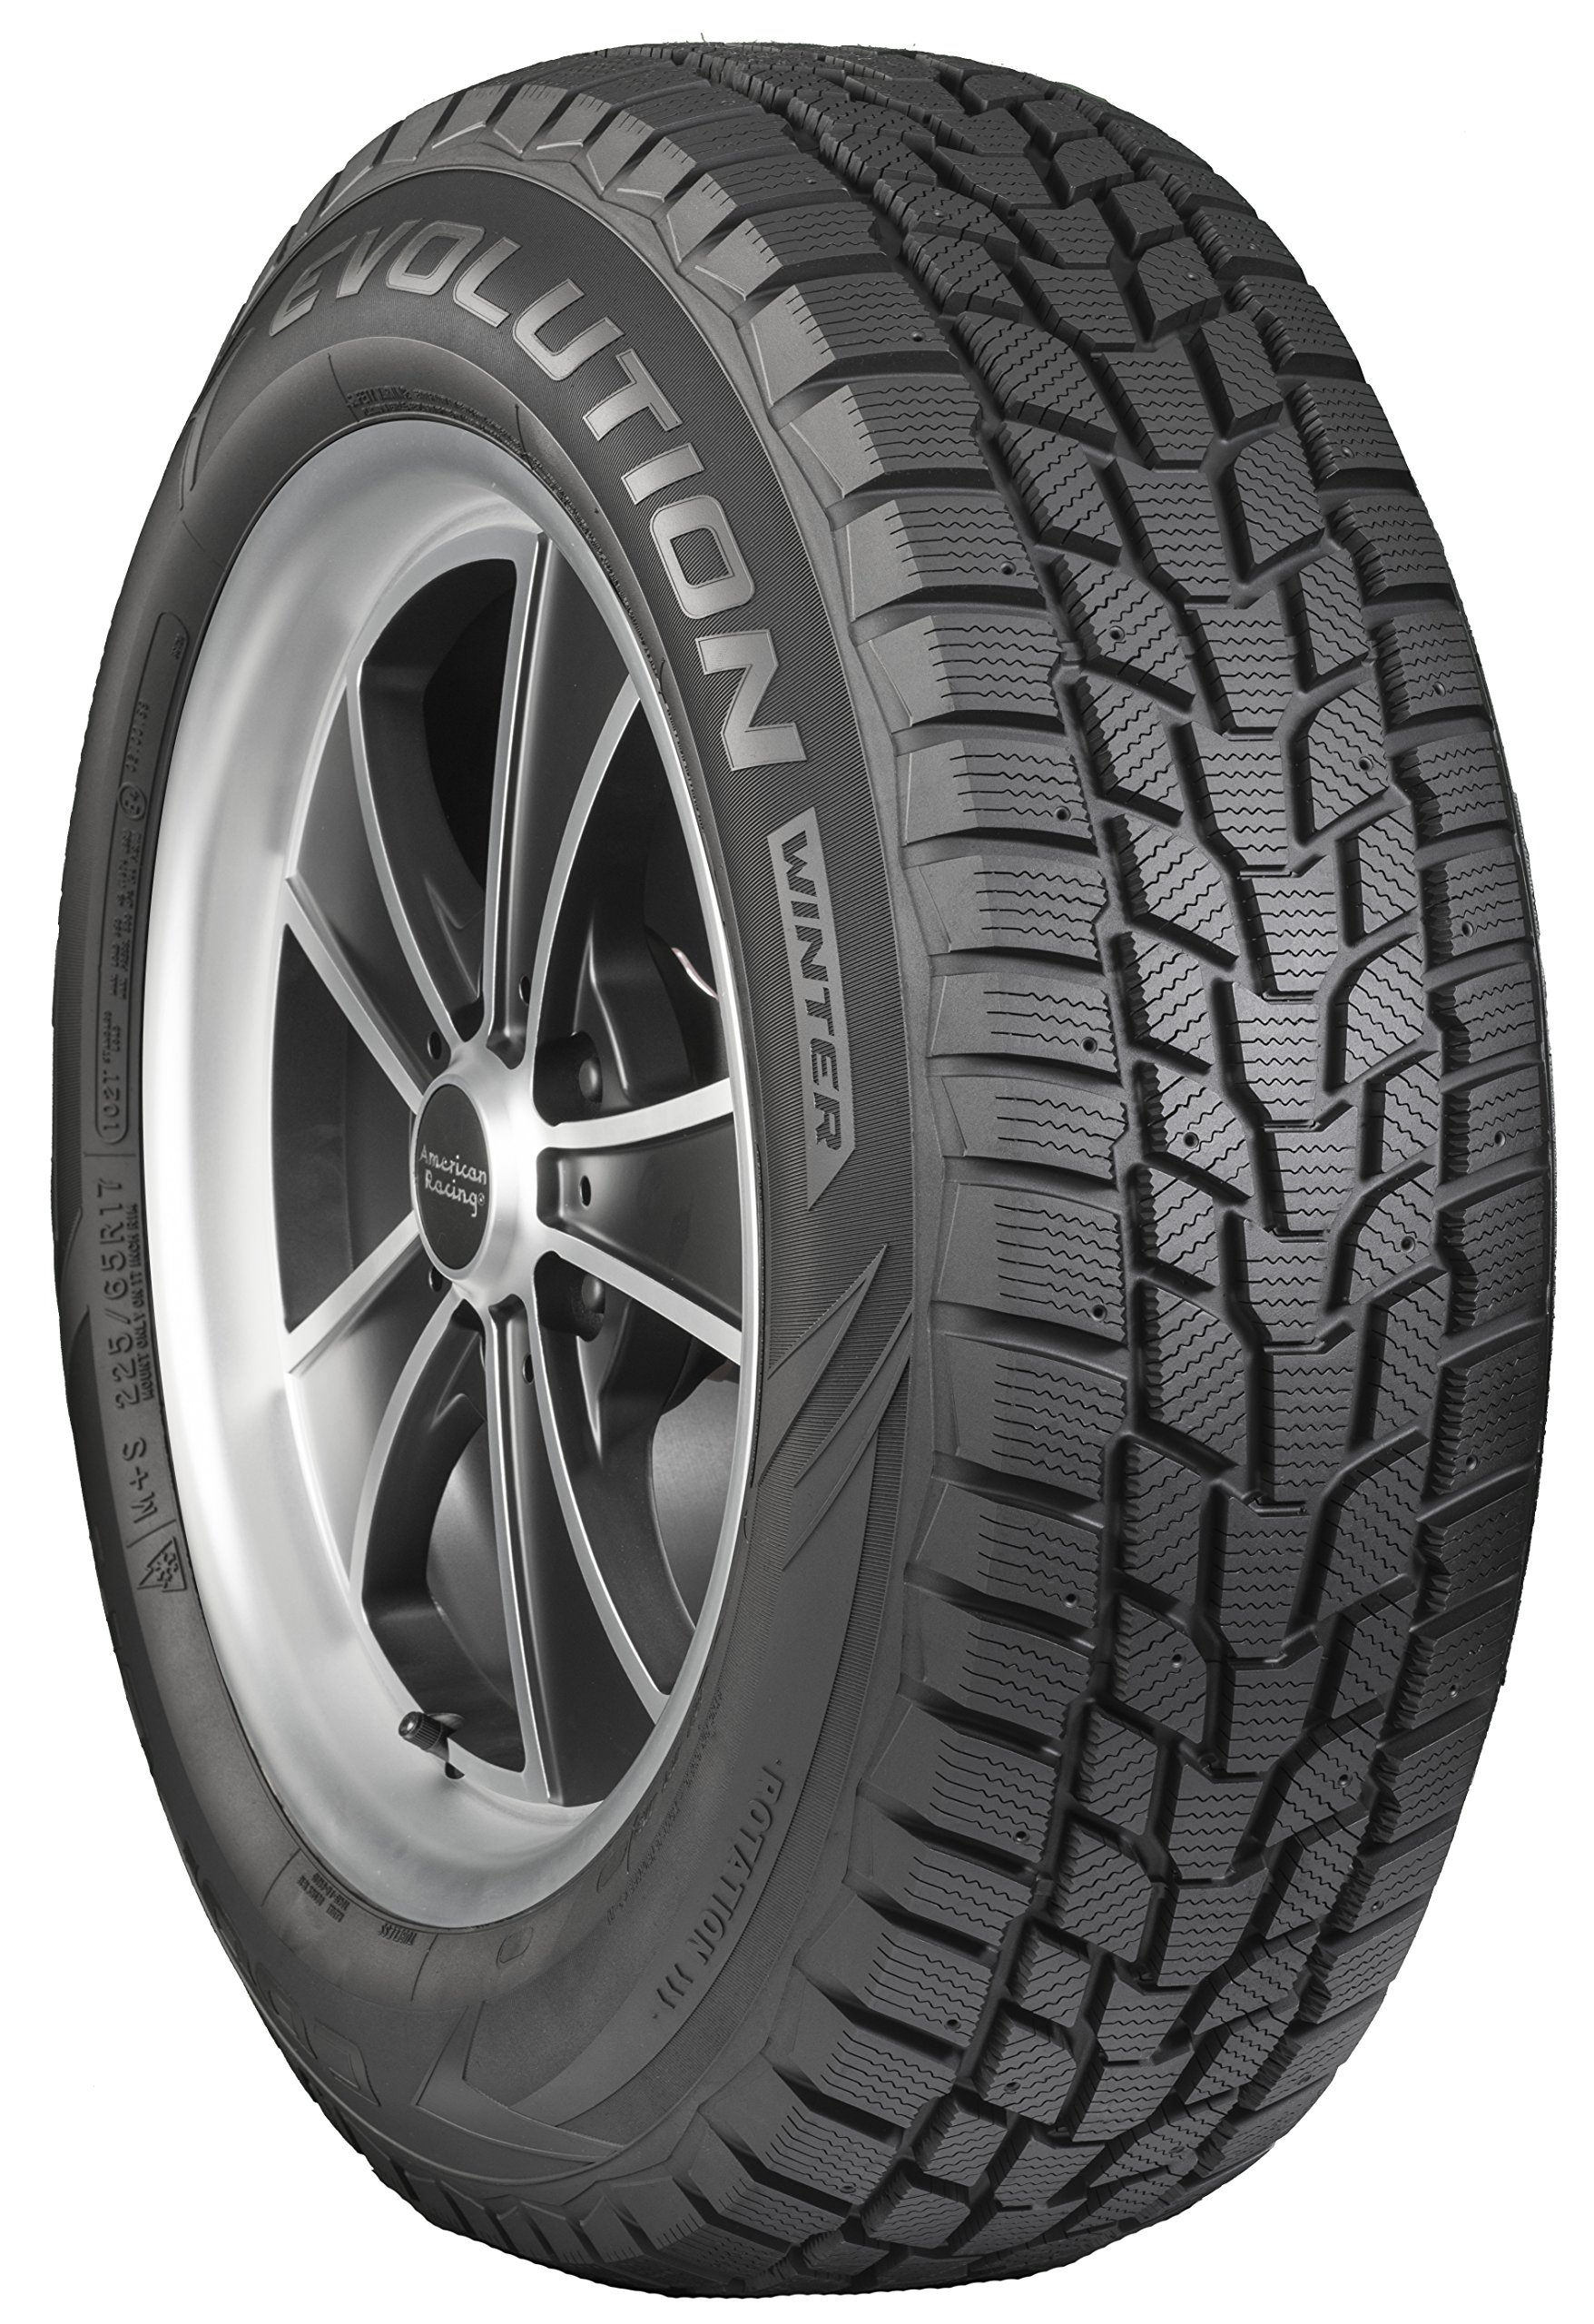 Cooper Evolution Winter Studable-Winter Radial Tire - 215/70R15 98T by Cooper Tire